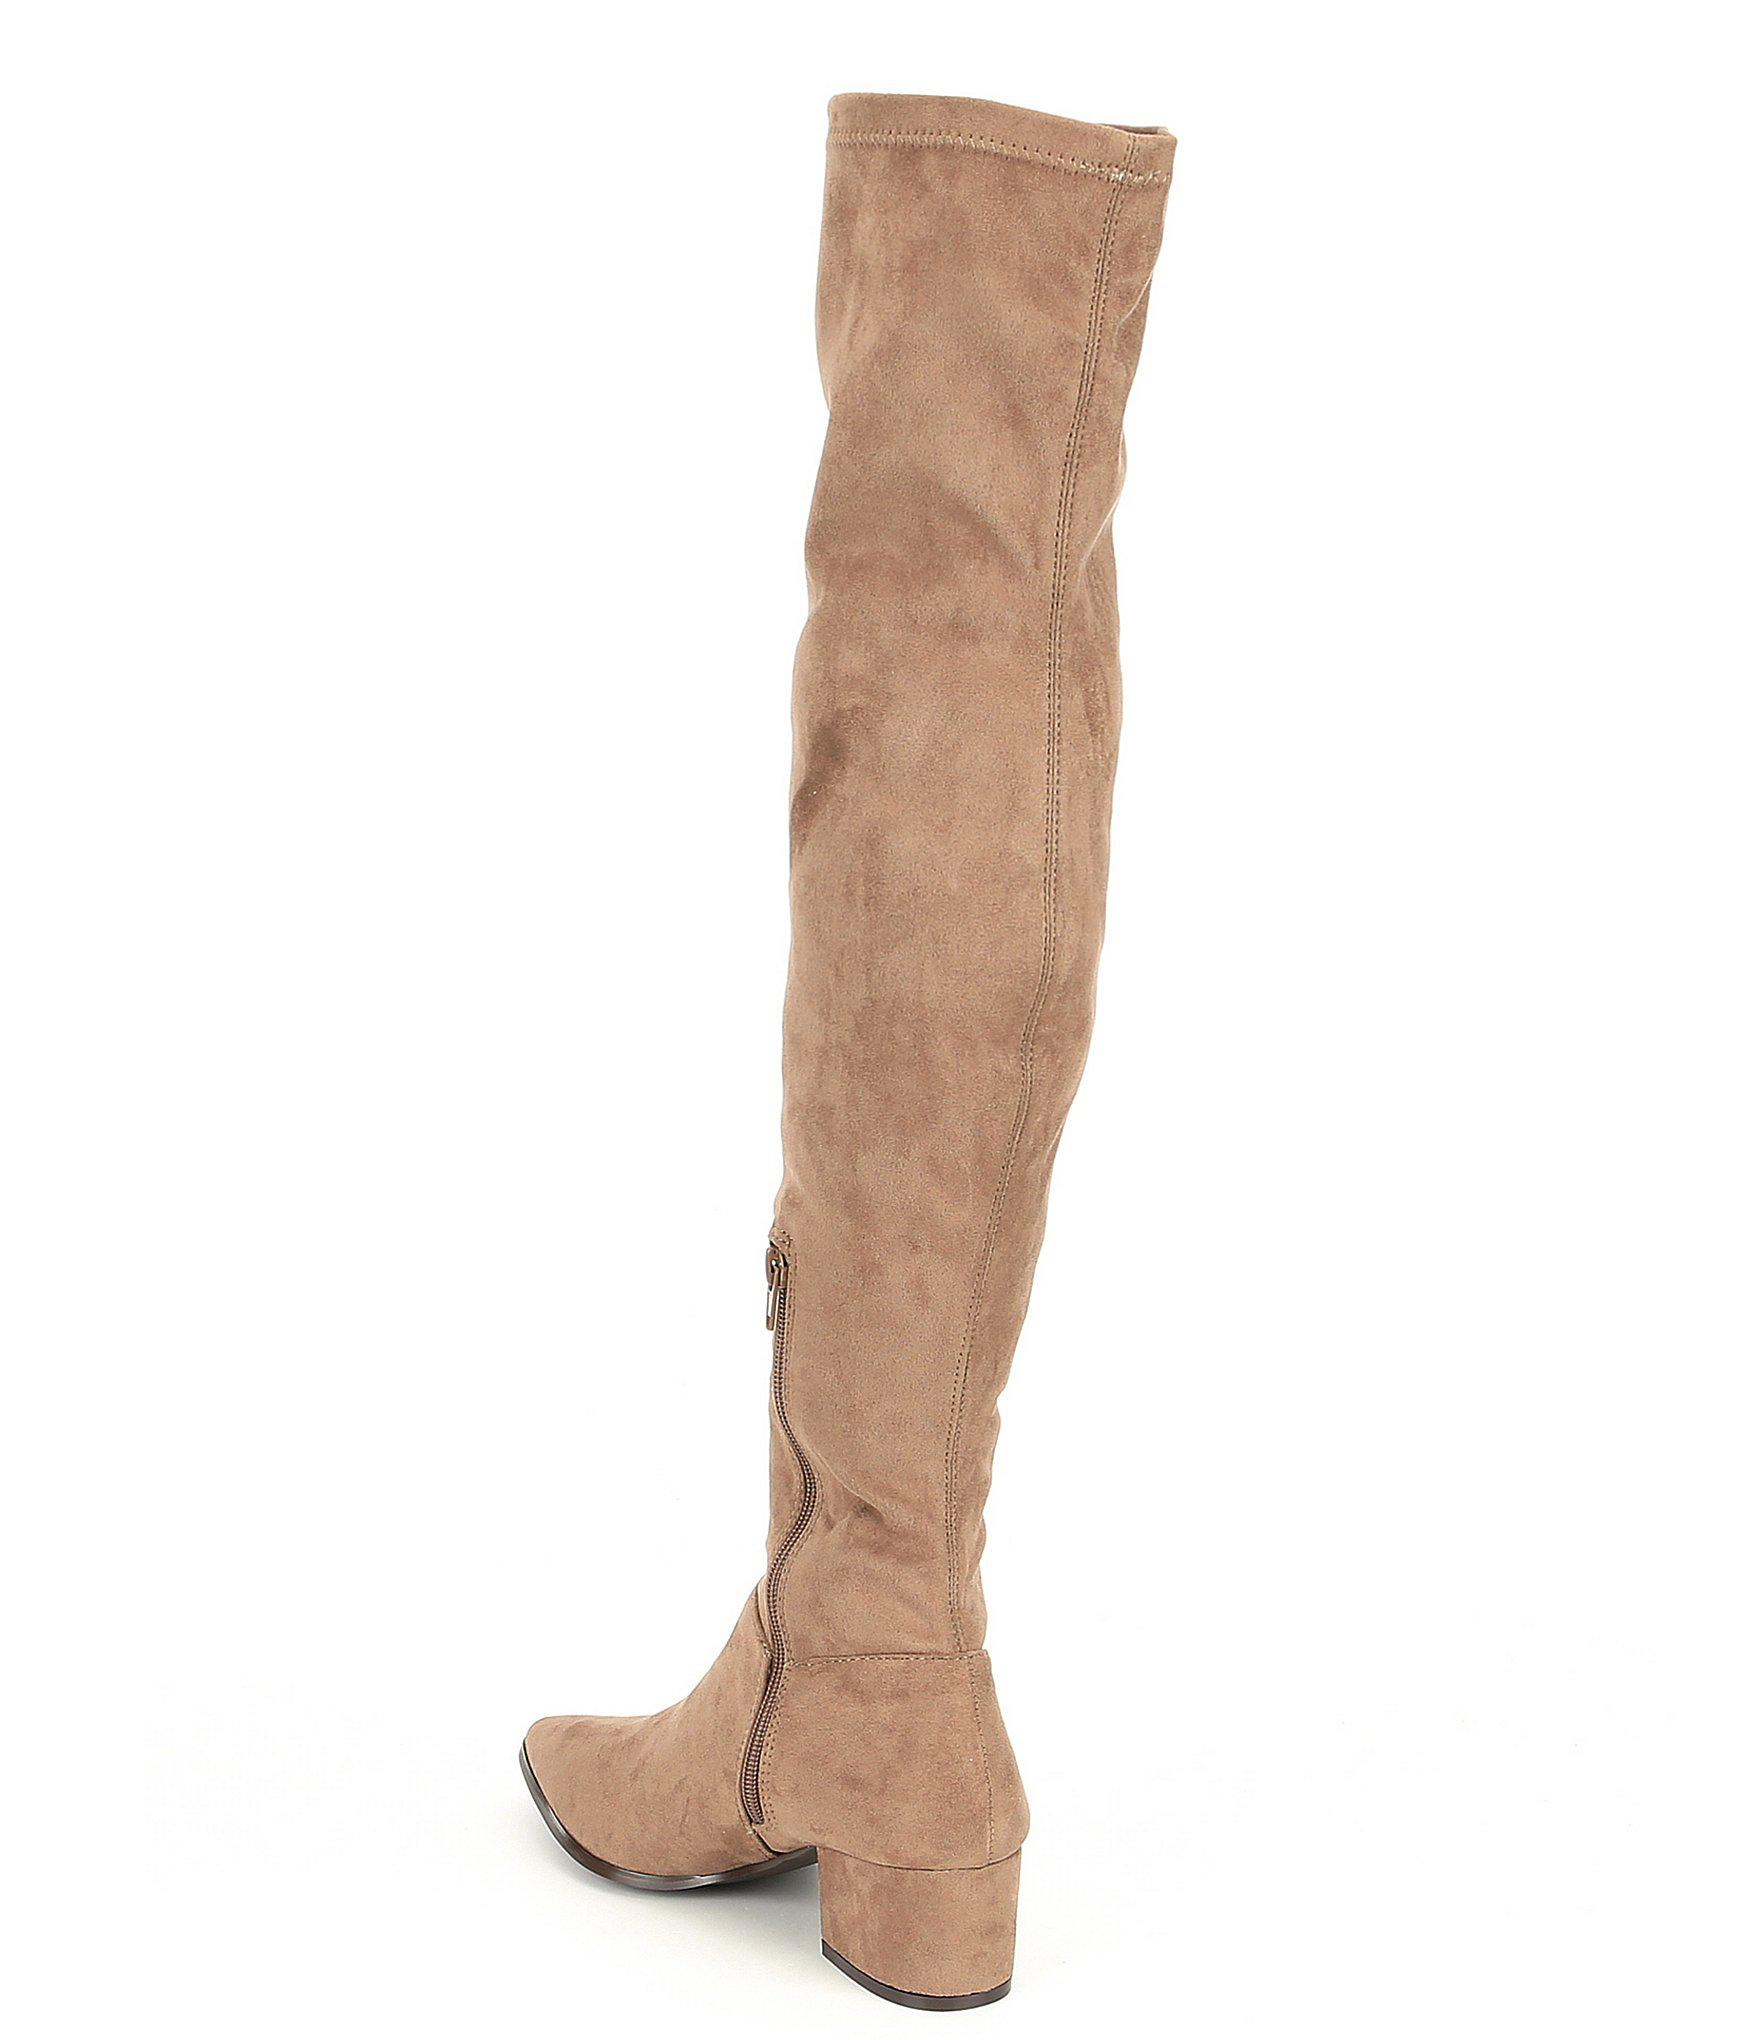 badc4e8b6c8 Lyst - Steve Madden Carli Over The Knee Block Heel Boots in Brown